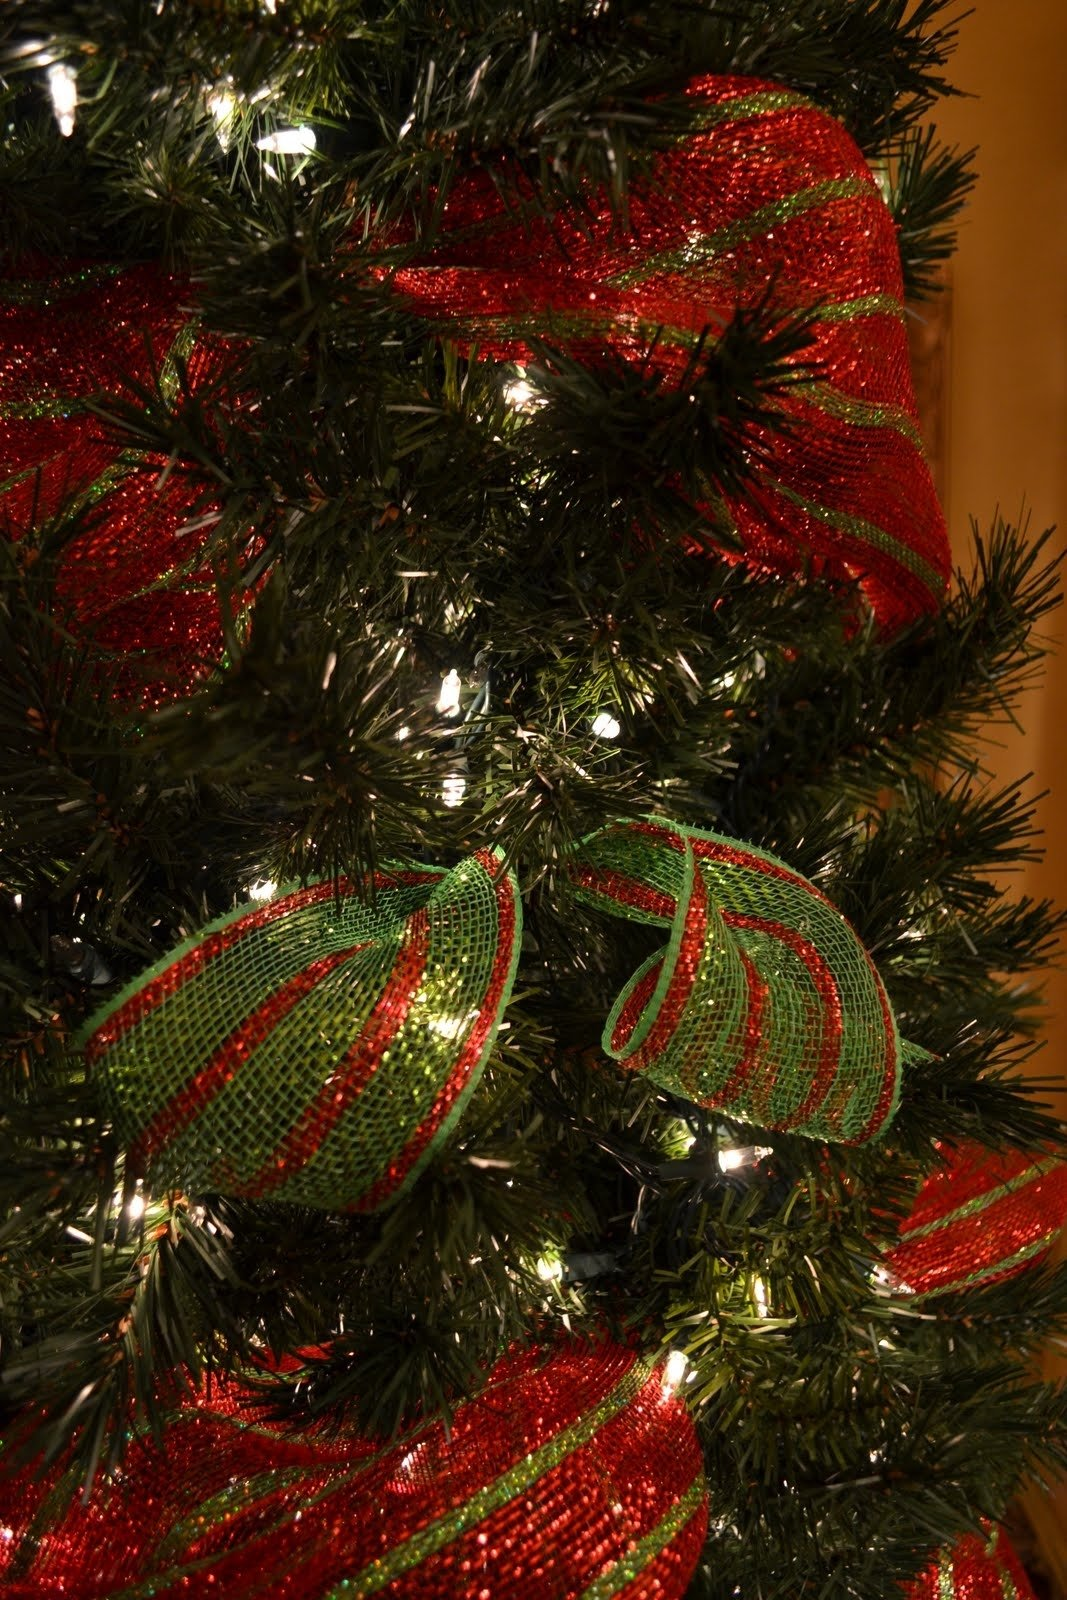 10 Fabulous Decorating With Mesh Ribbon Ideas kristens creations decorating a christmas tree with mesh ribbon 1 2021